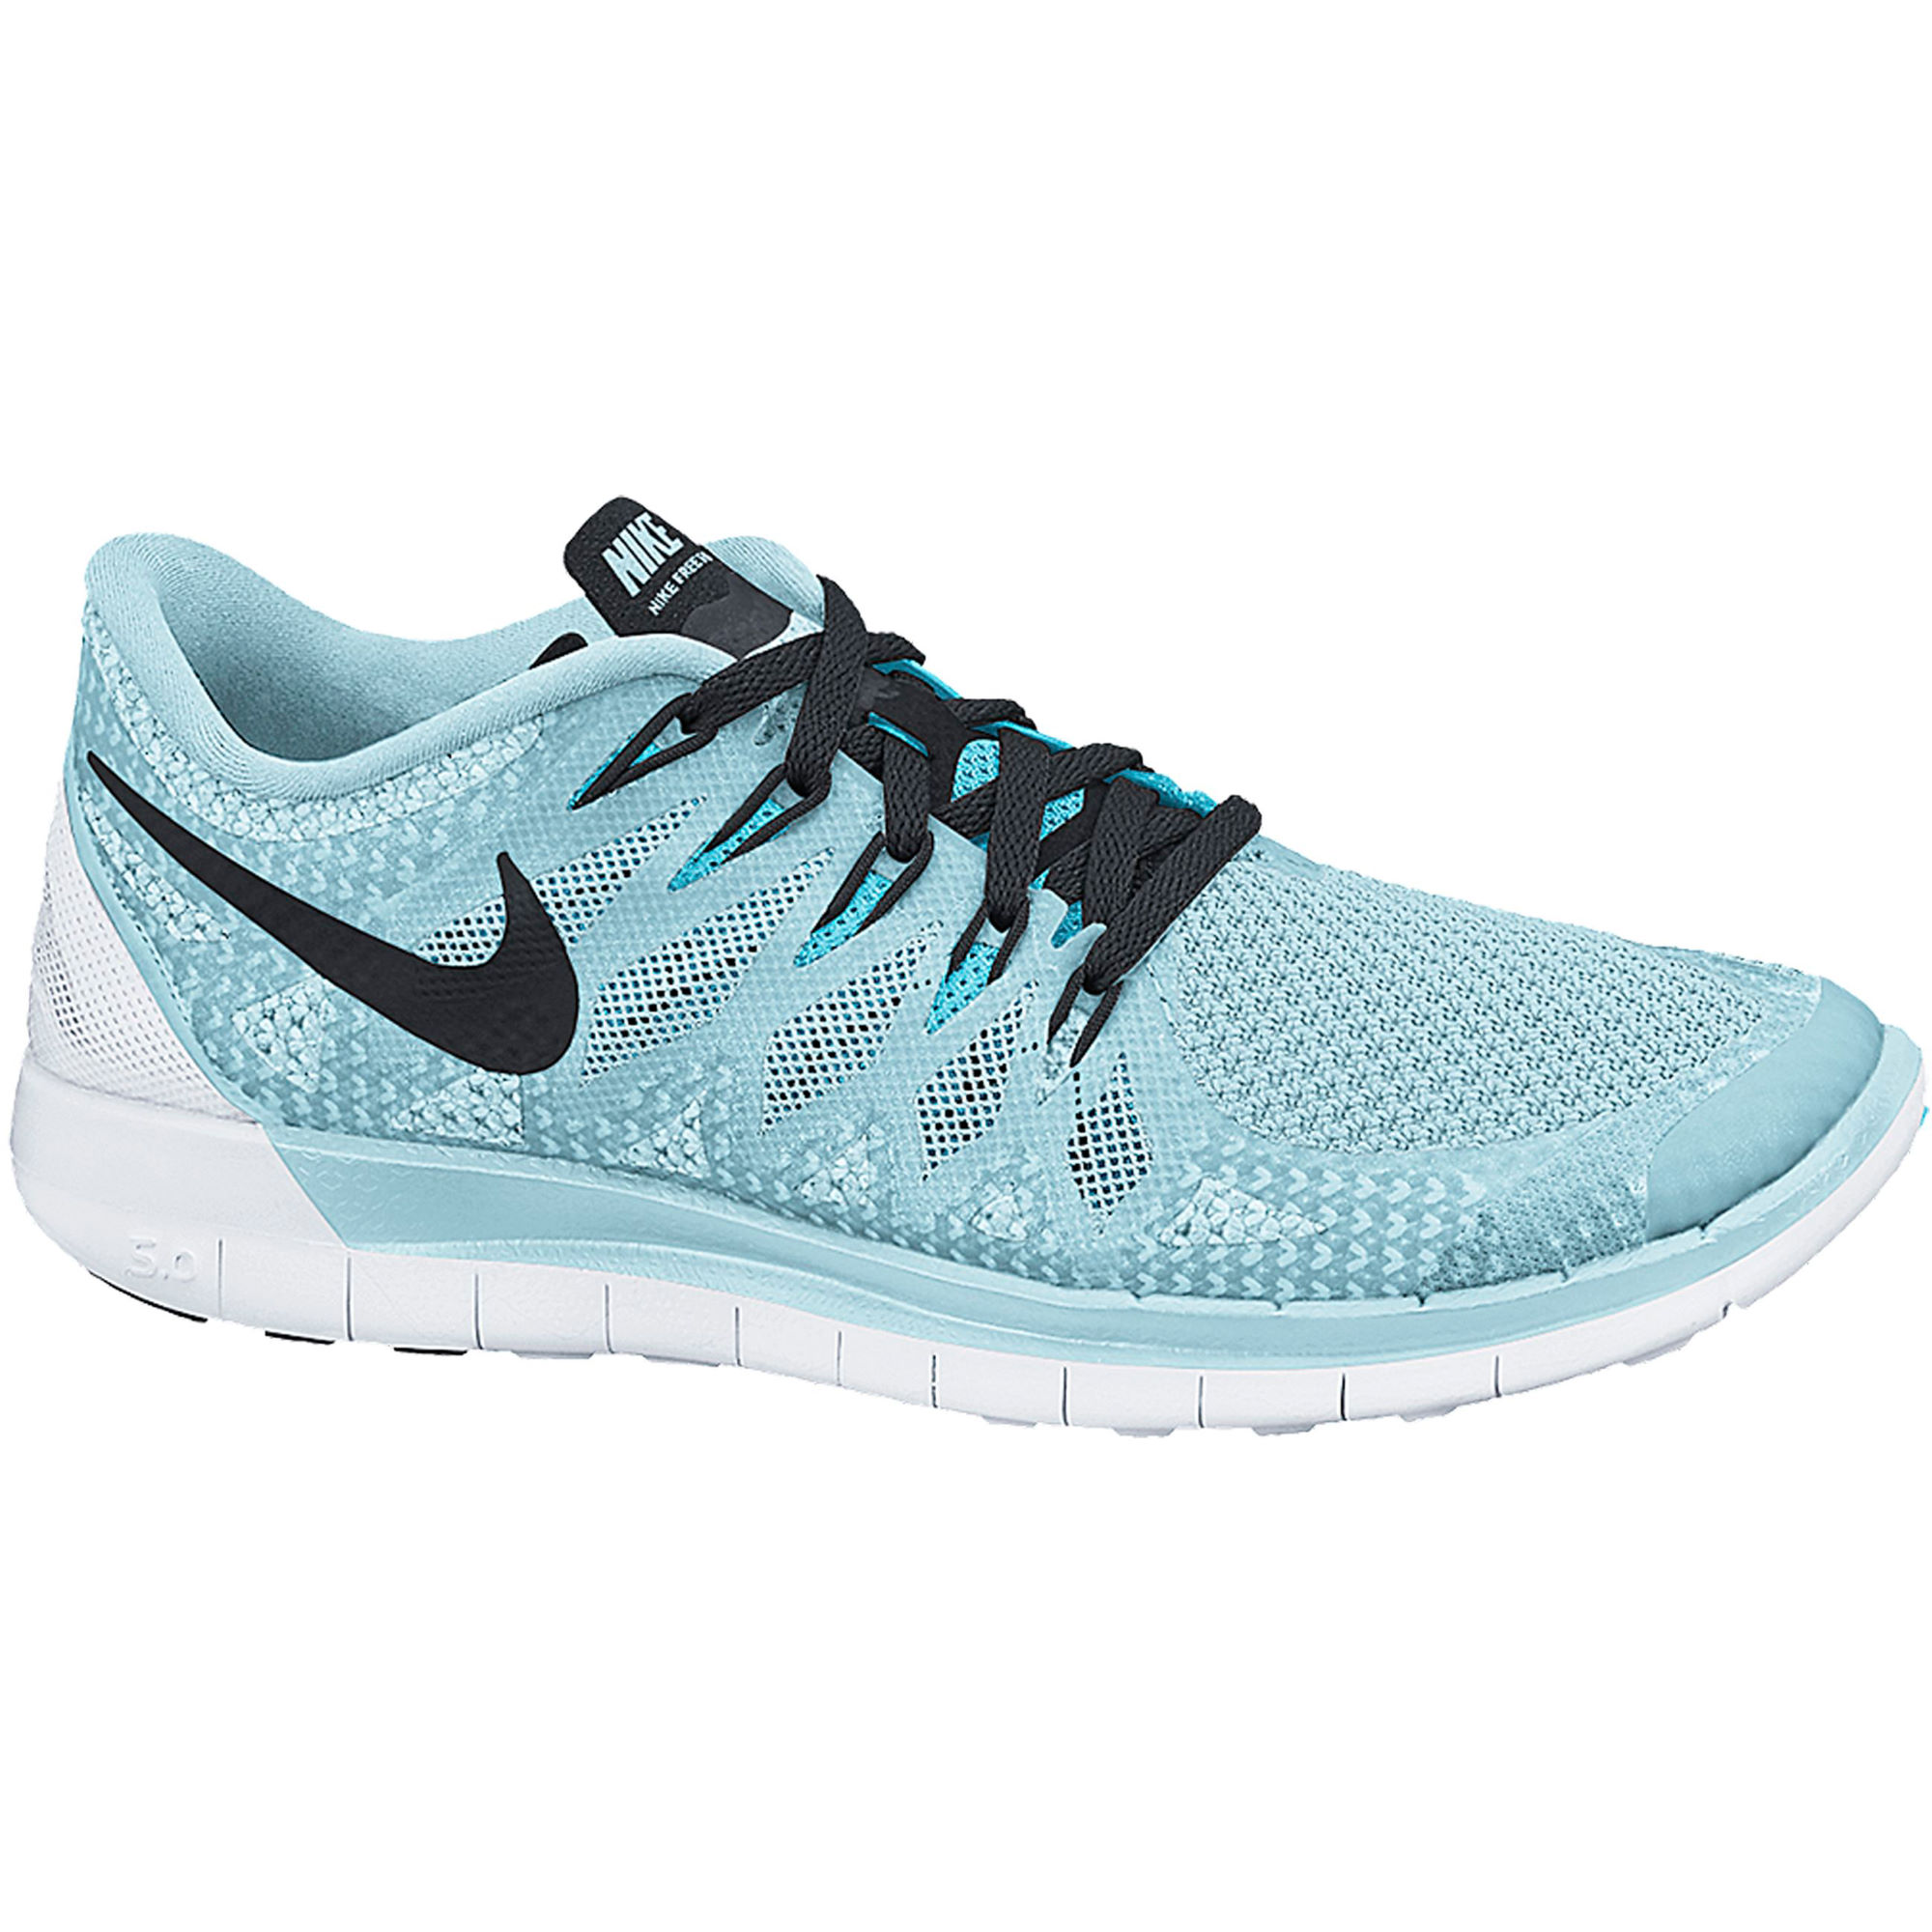 nike women s free 5 0 shoes sp15 training running shoes light blue q1. Black Bedroom Furniture Sets. Home Design Ideas